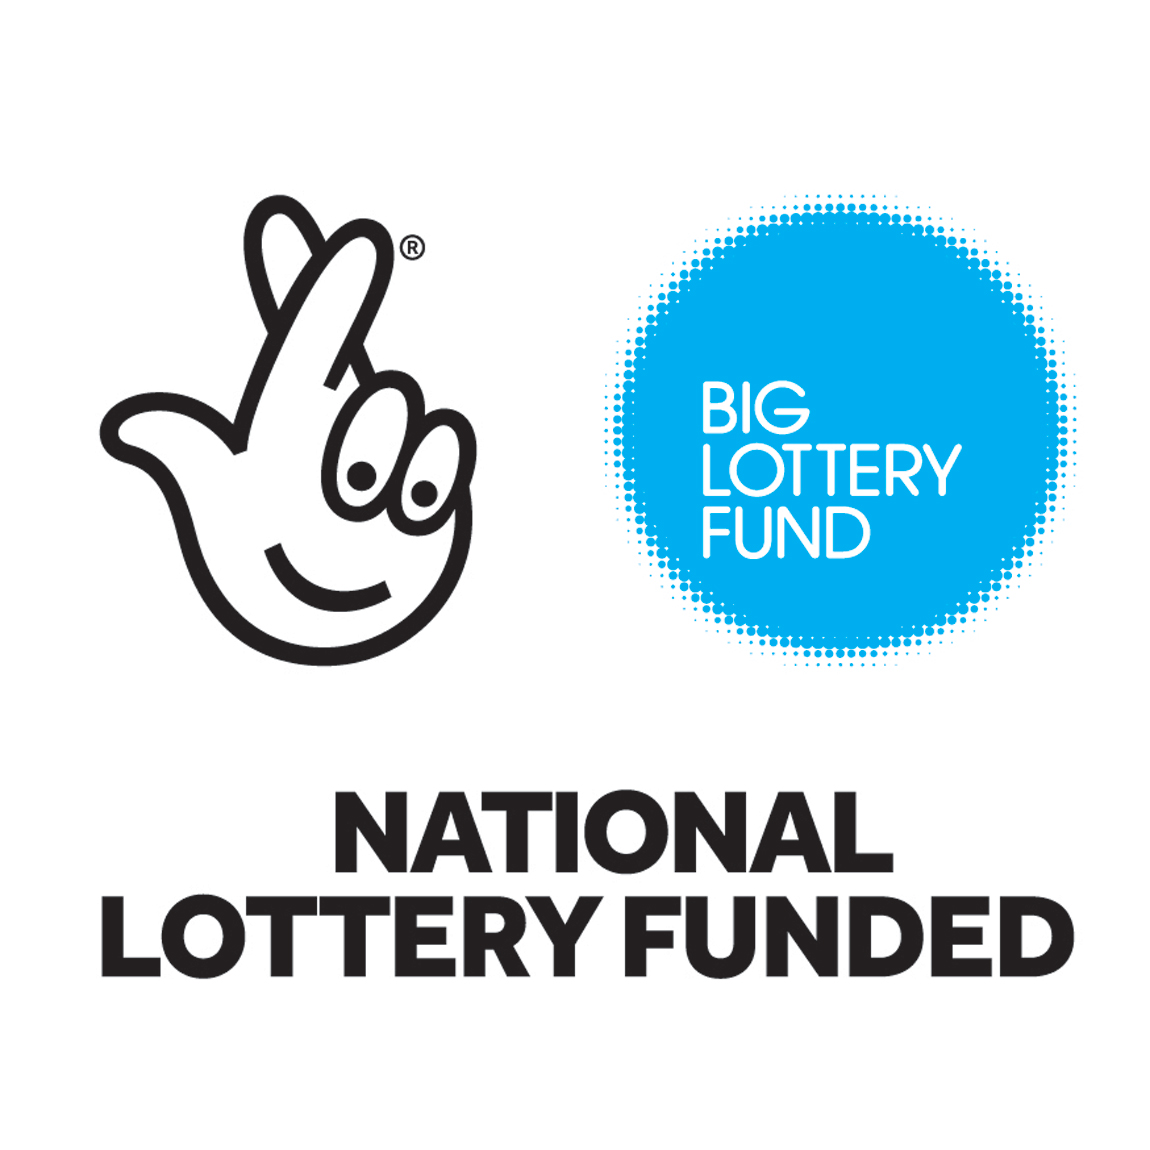 Logo of the Big Lottery Fund, with the words NATIONAL LOTTERY FUNDED below it.